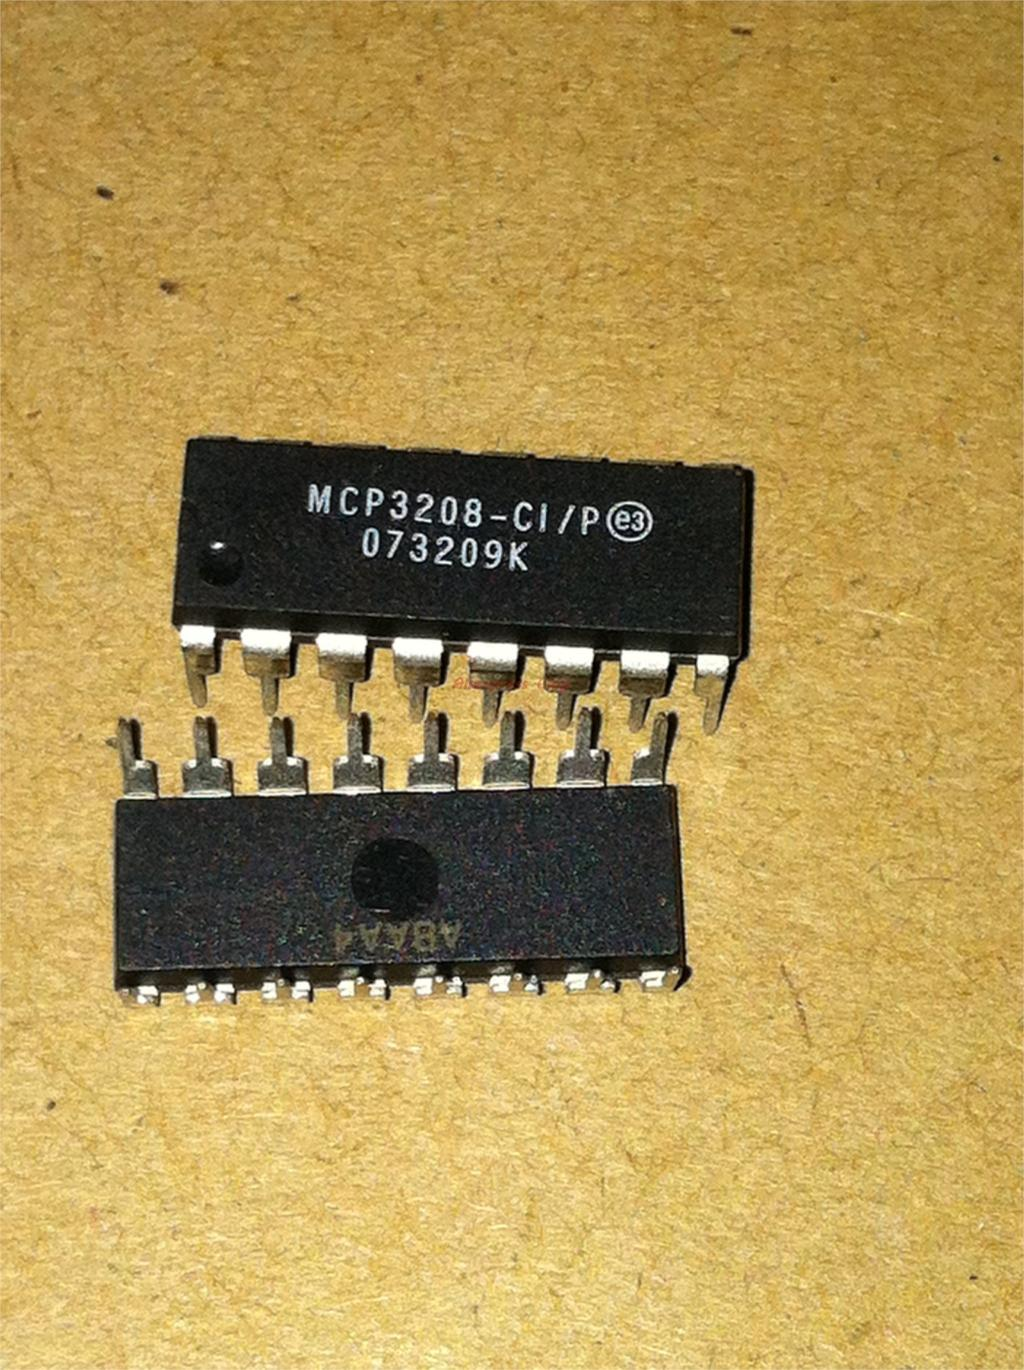 1pcs/lot MCP3208 MCP3208-CI/P DIP-16 In Stock